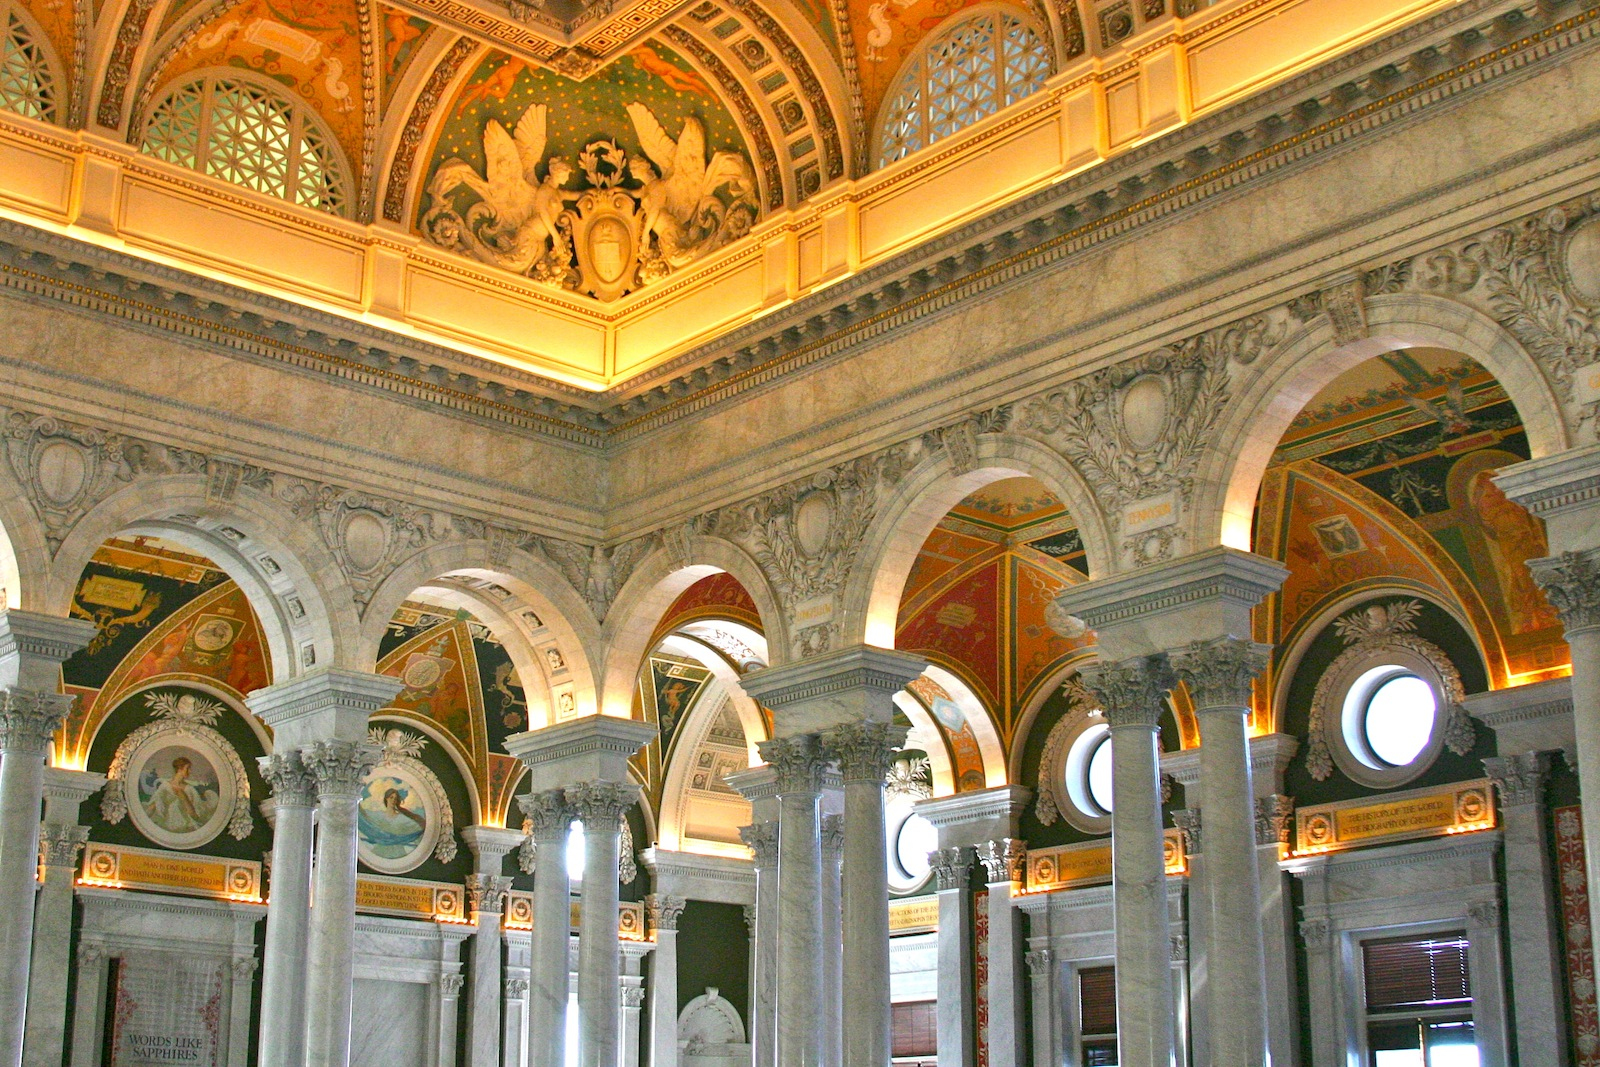 Library of Congress, President's Day 2013